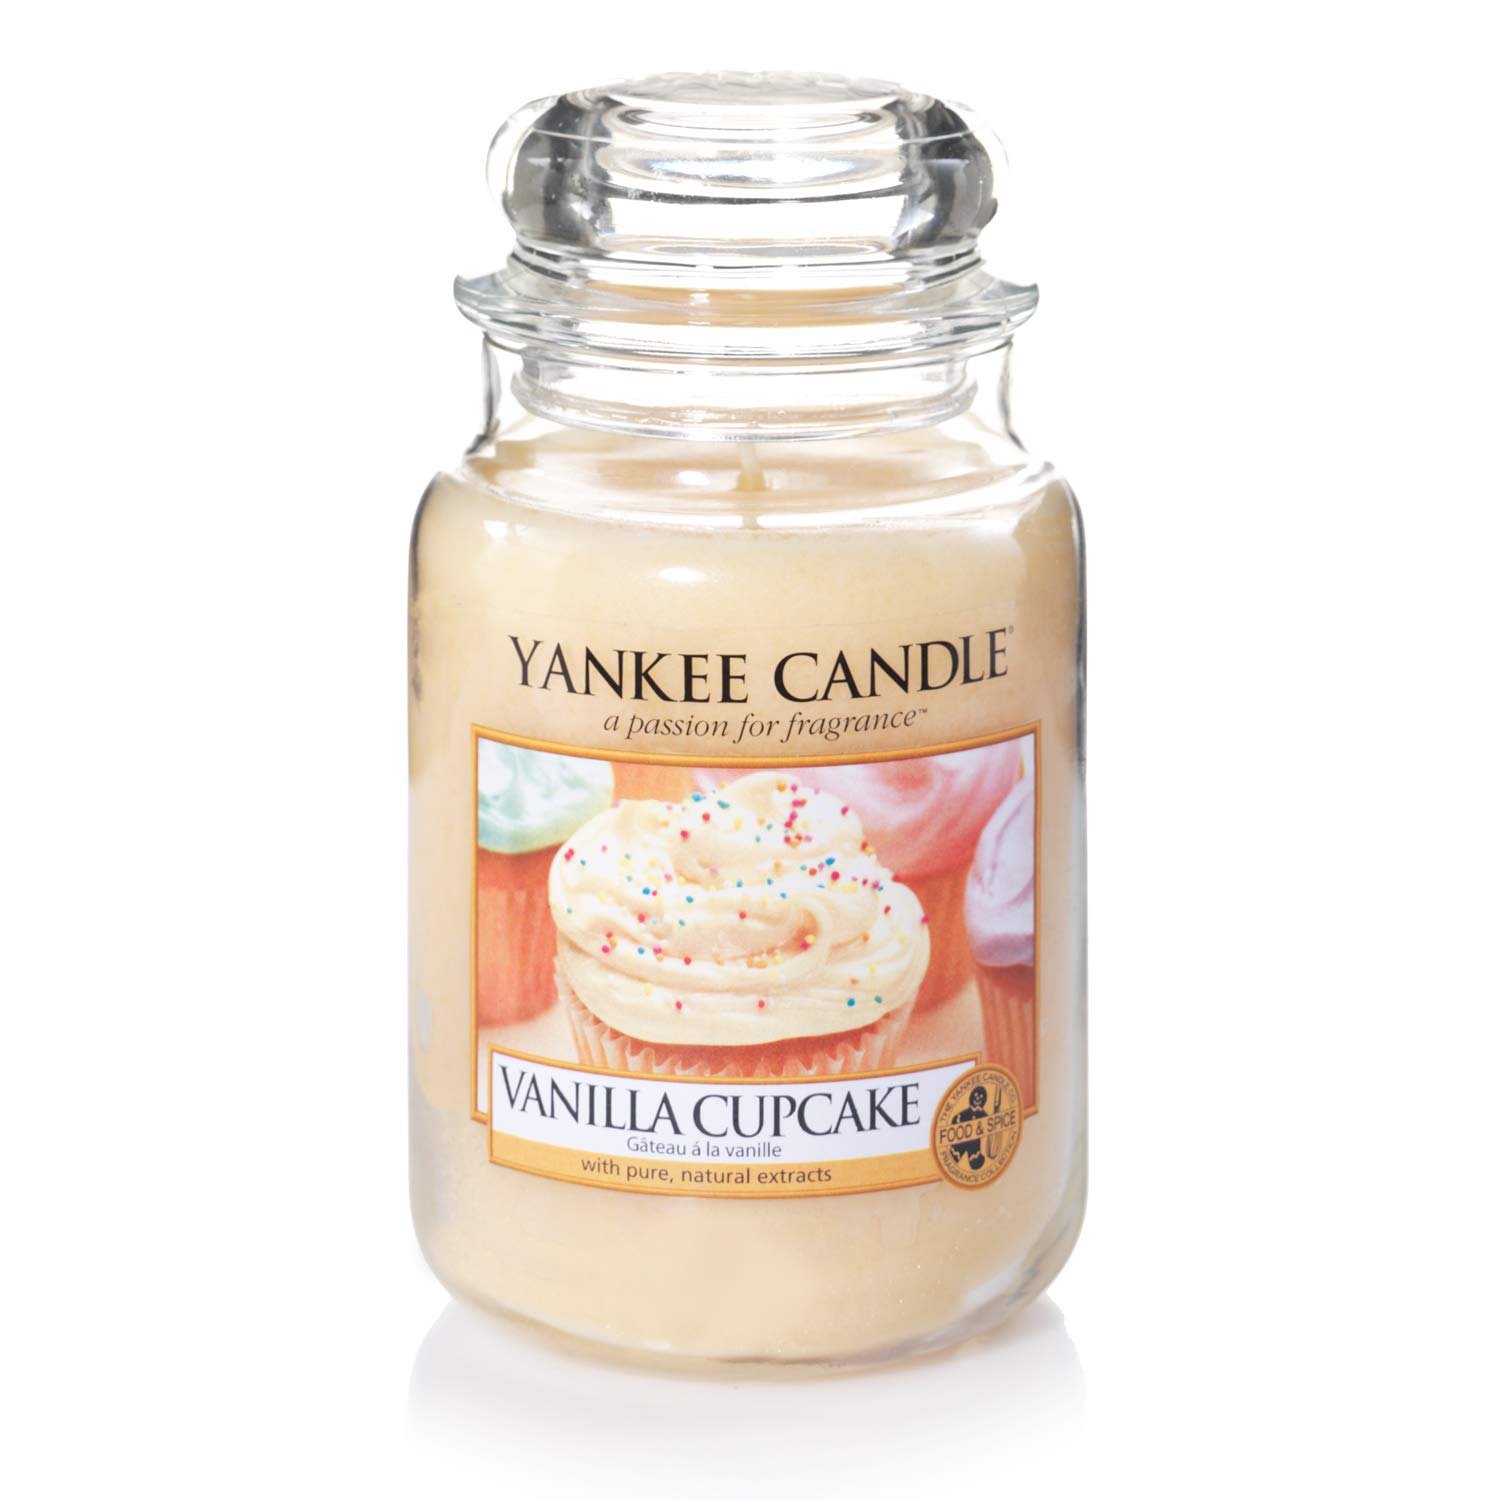 bougie yankee candle prix